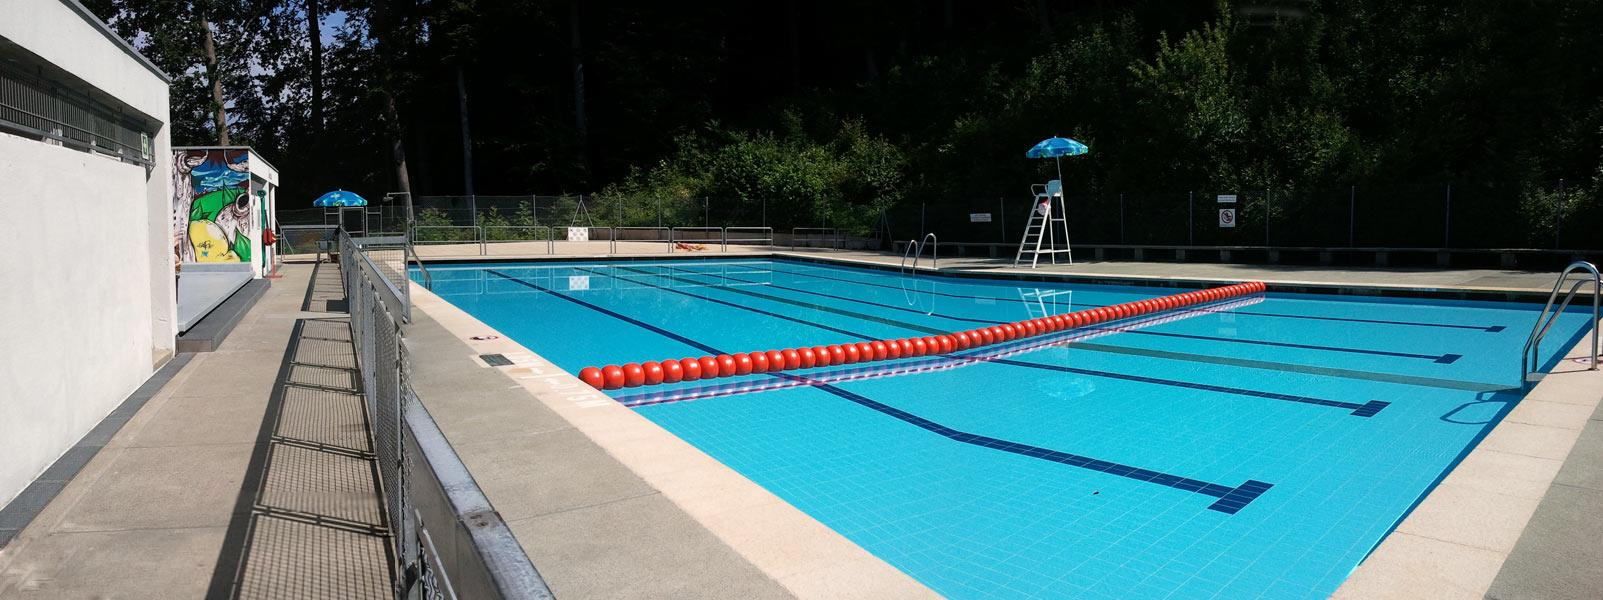 Bellevaux swimming pool